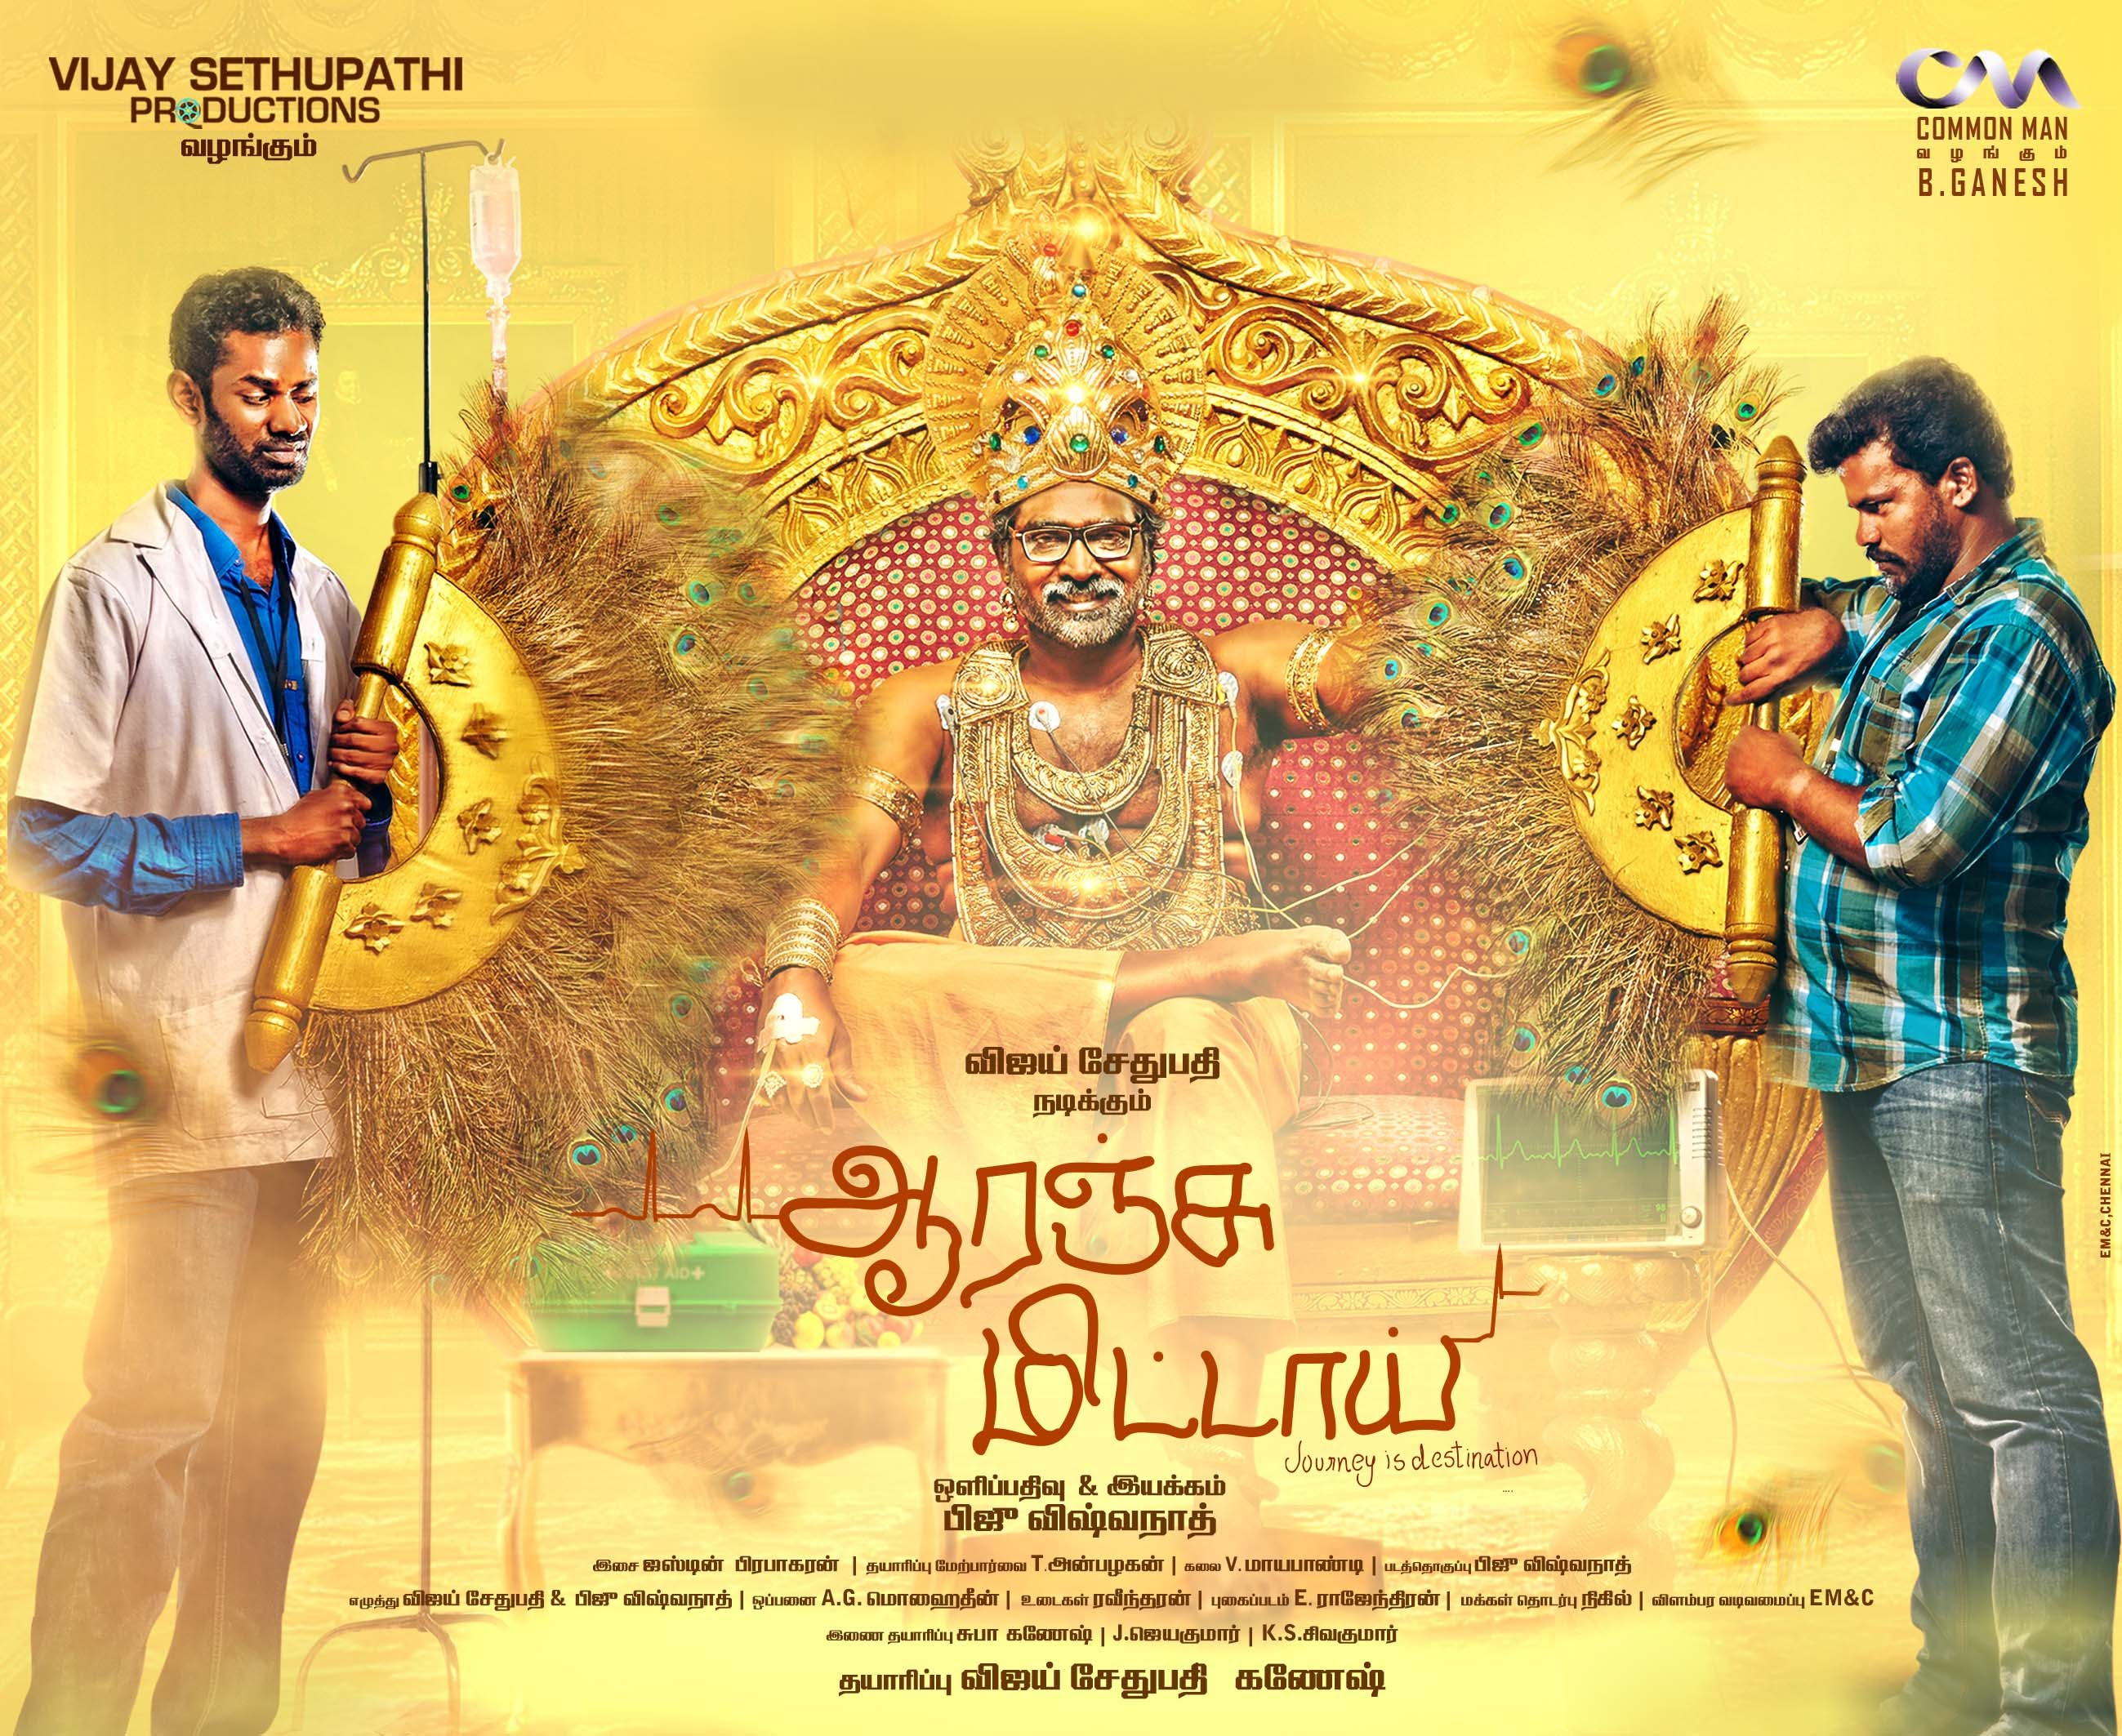 Southern Film Orange Mittai Trailer Hd Video Released